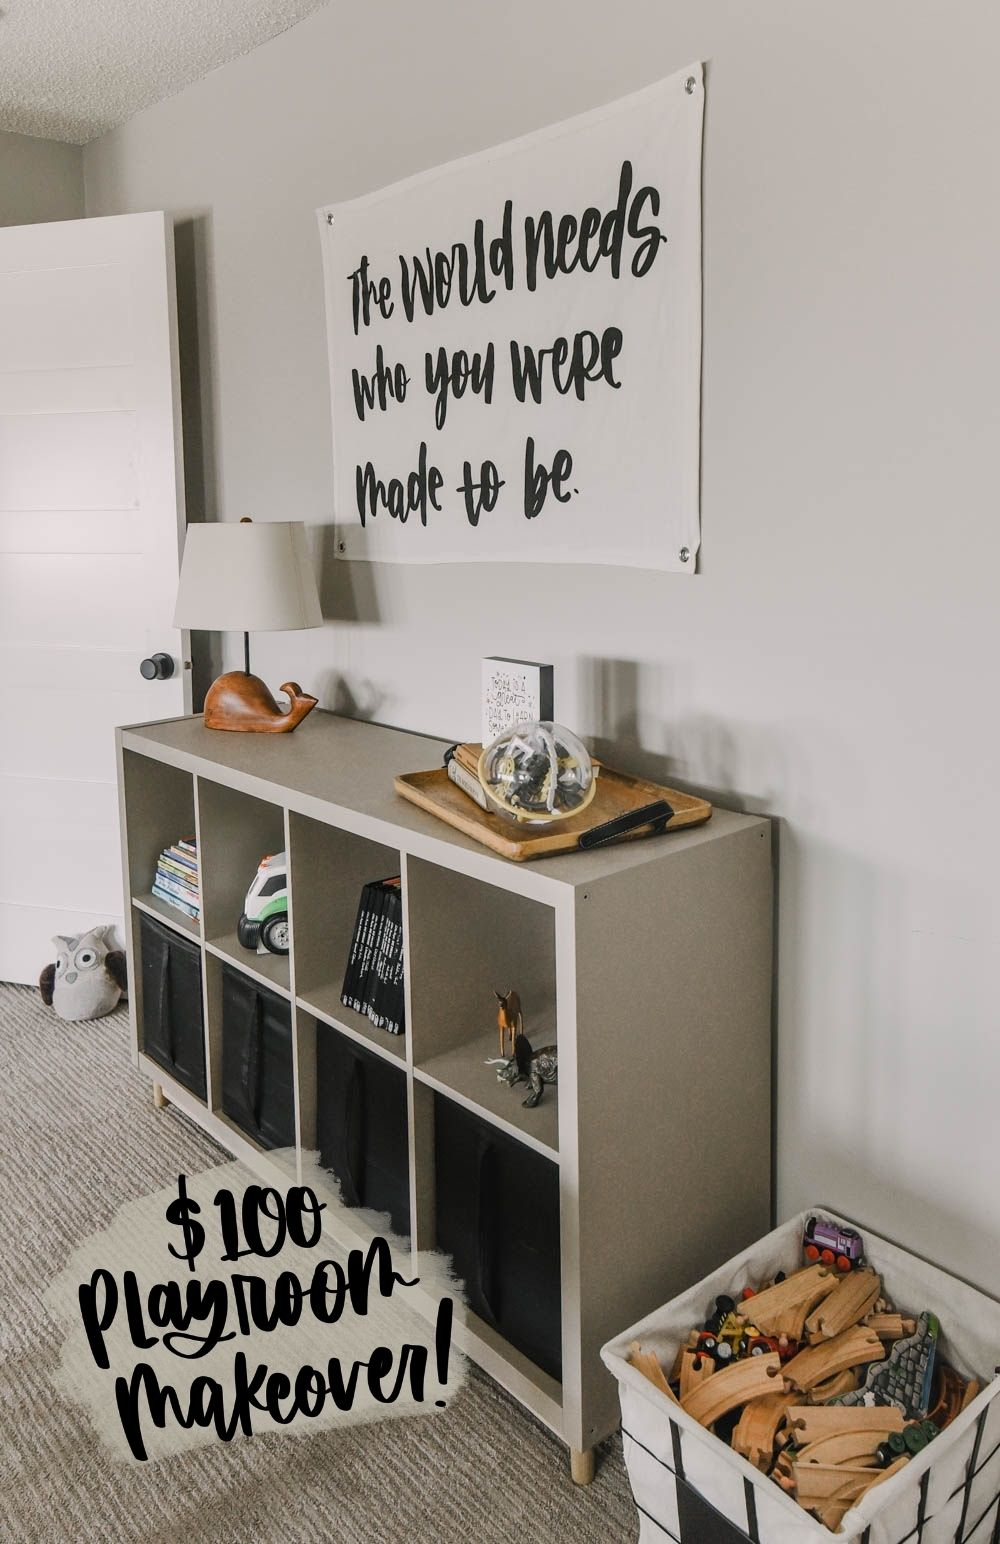 Image of playroom storage with text overlay $100 Playroom Makeover